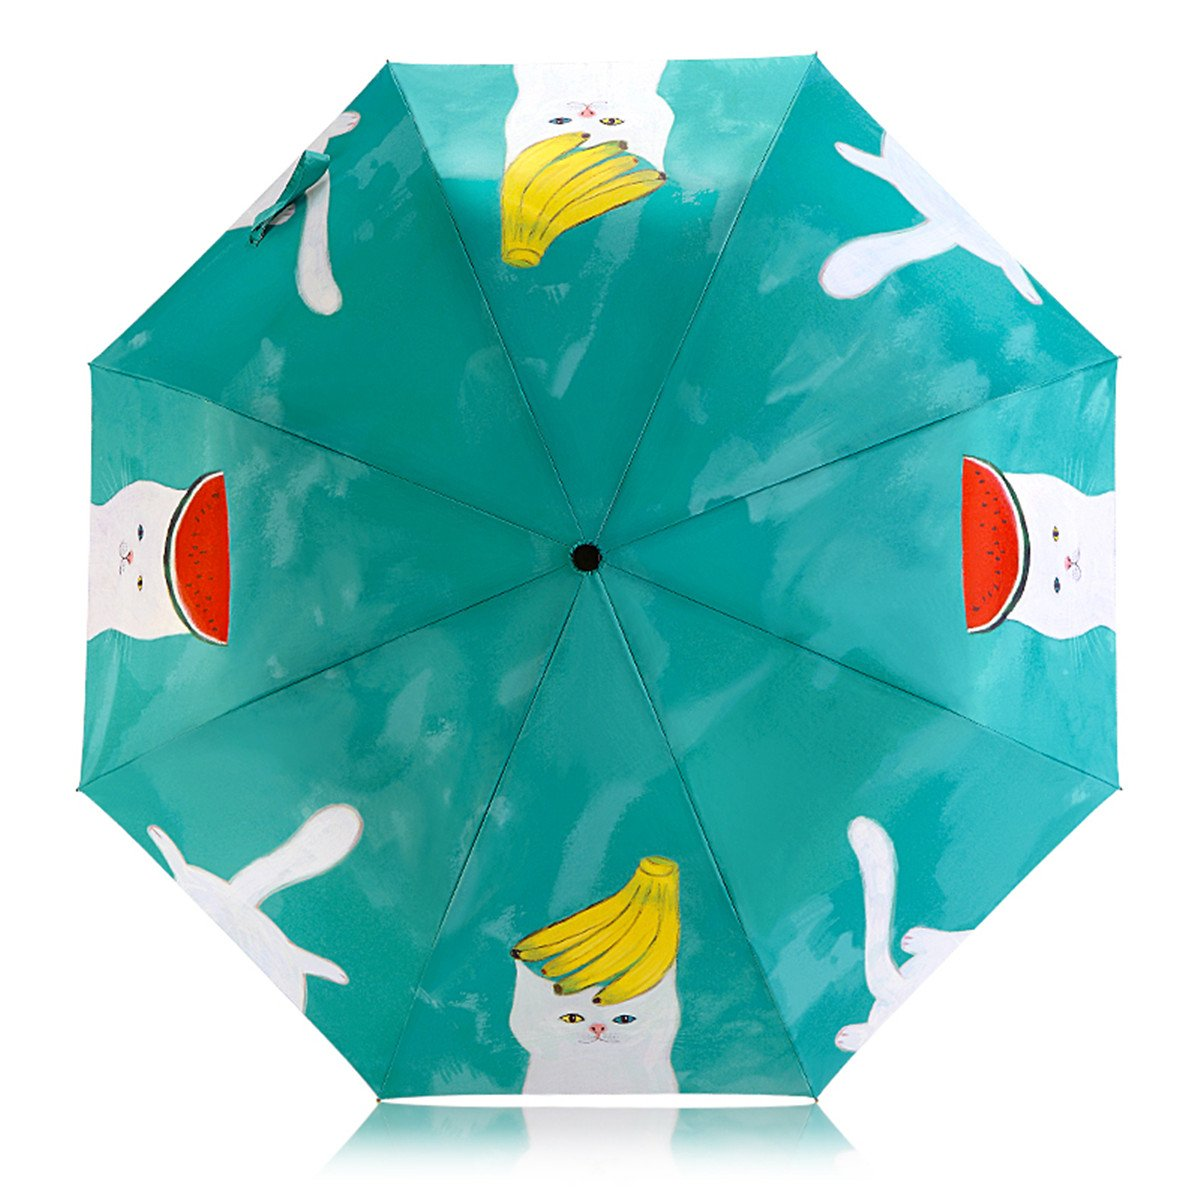 Artistic Umbrella Light-weighted Folding Umbrella with Anti-UV and Windproof Funtions Suitable for Both Sunny and Raining Days- Available In 5 Patterns (Fruit And Cat)